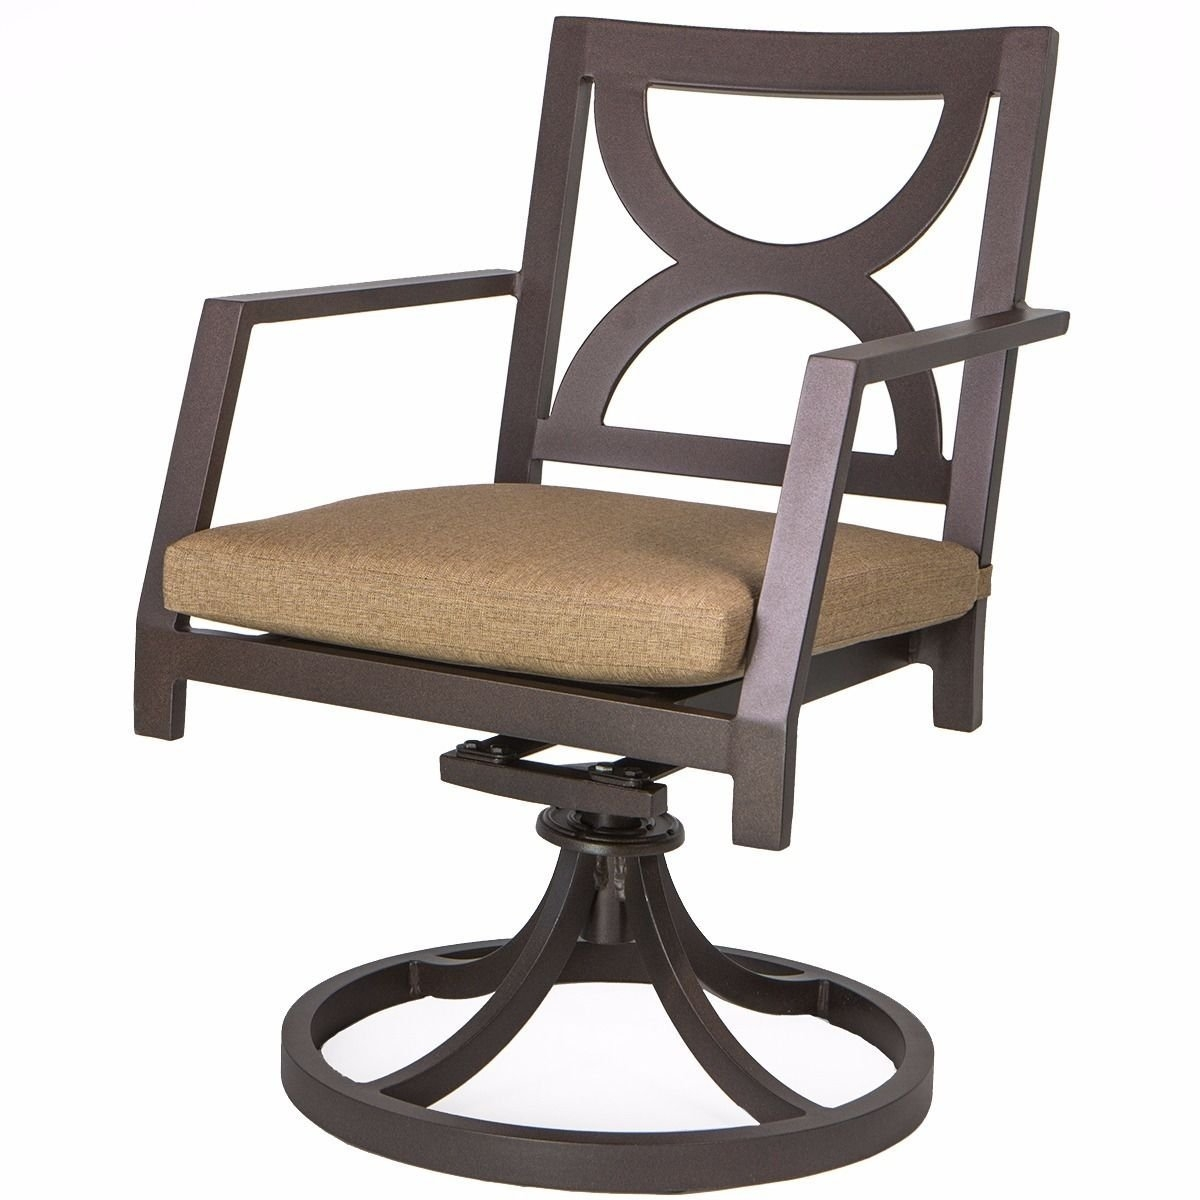 New MTN-G Bronze Outdoor Patio Dining Swivel Chair Swivel...